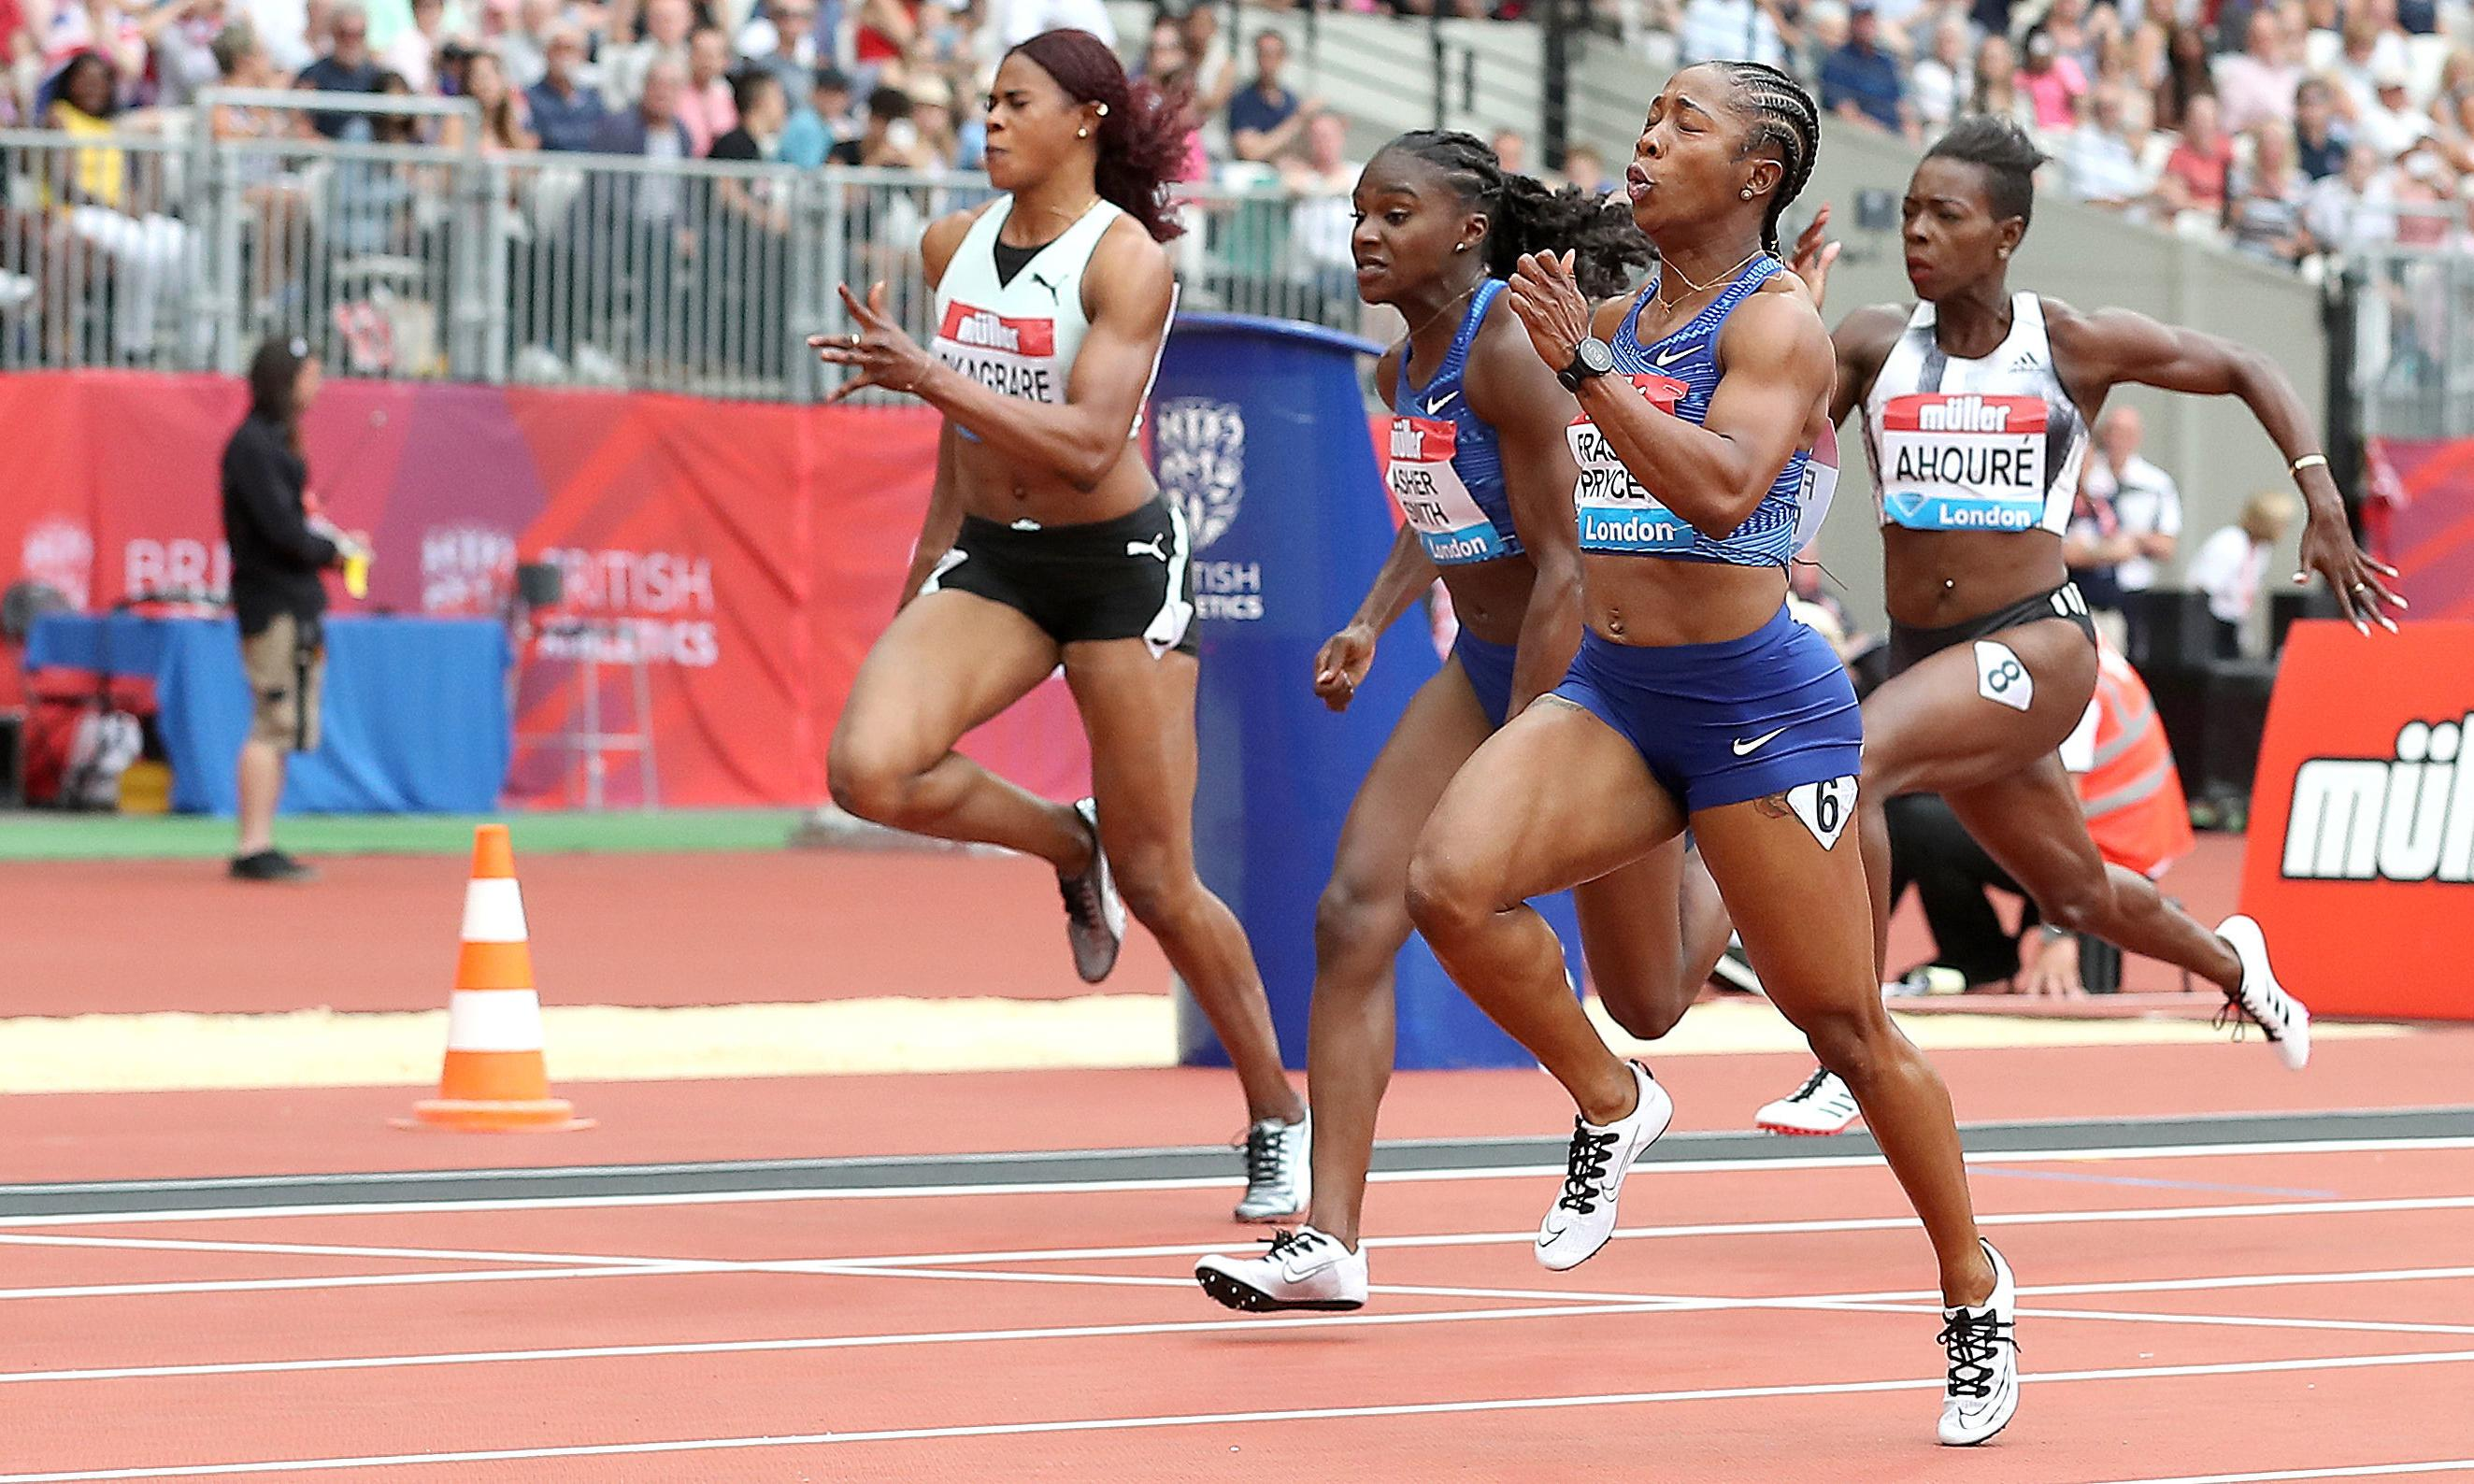 Dina Asher-Smith proud to finish second in 100m final at London Stadium